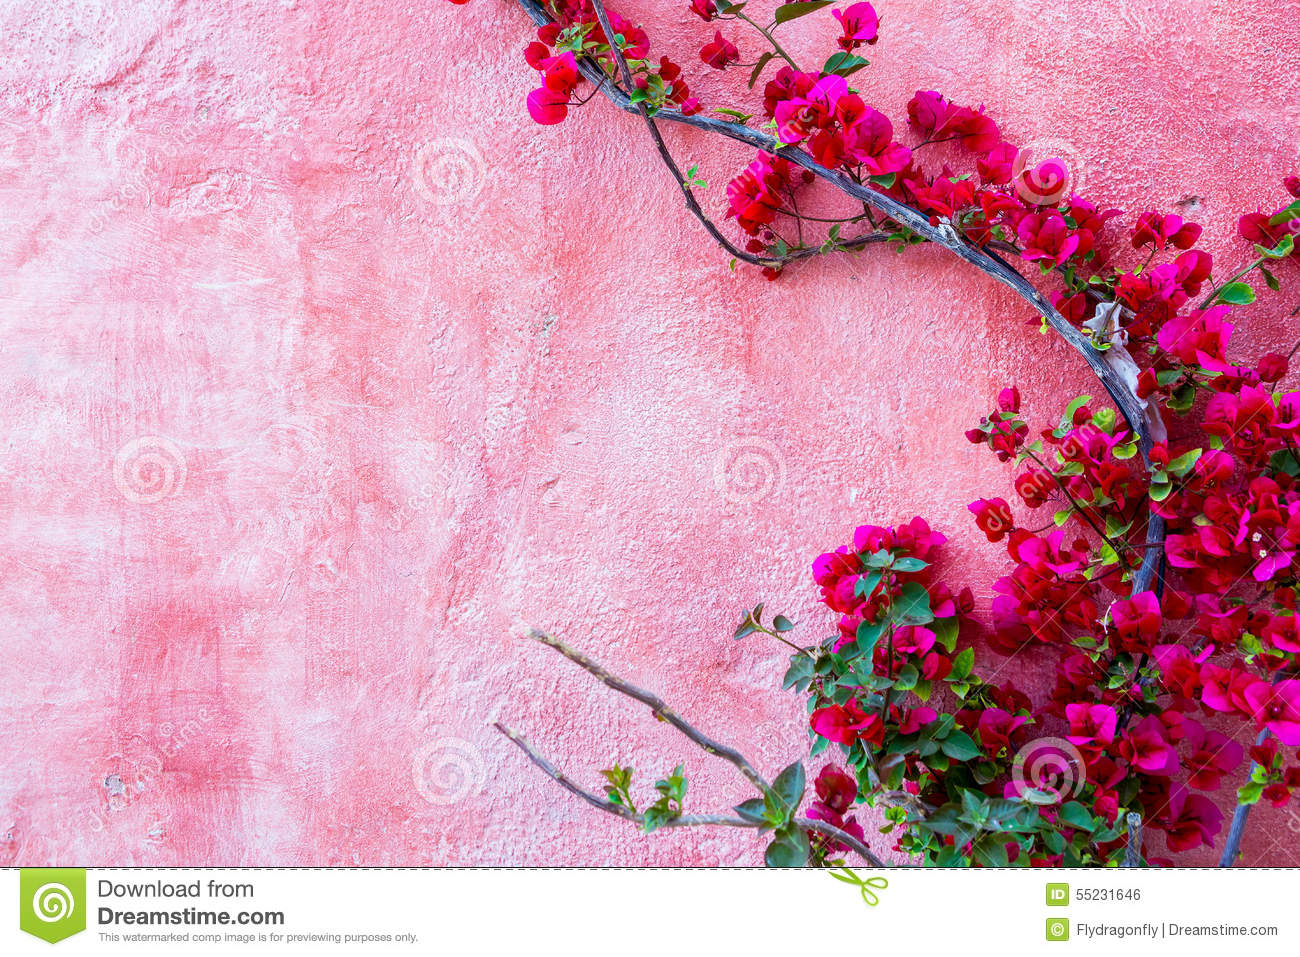 Red rose plant against pink wall background stock photo image of red rose plant against pink wall background mightylinksfo